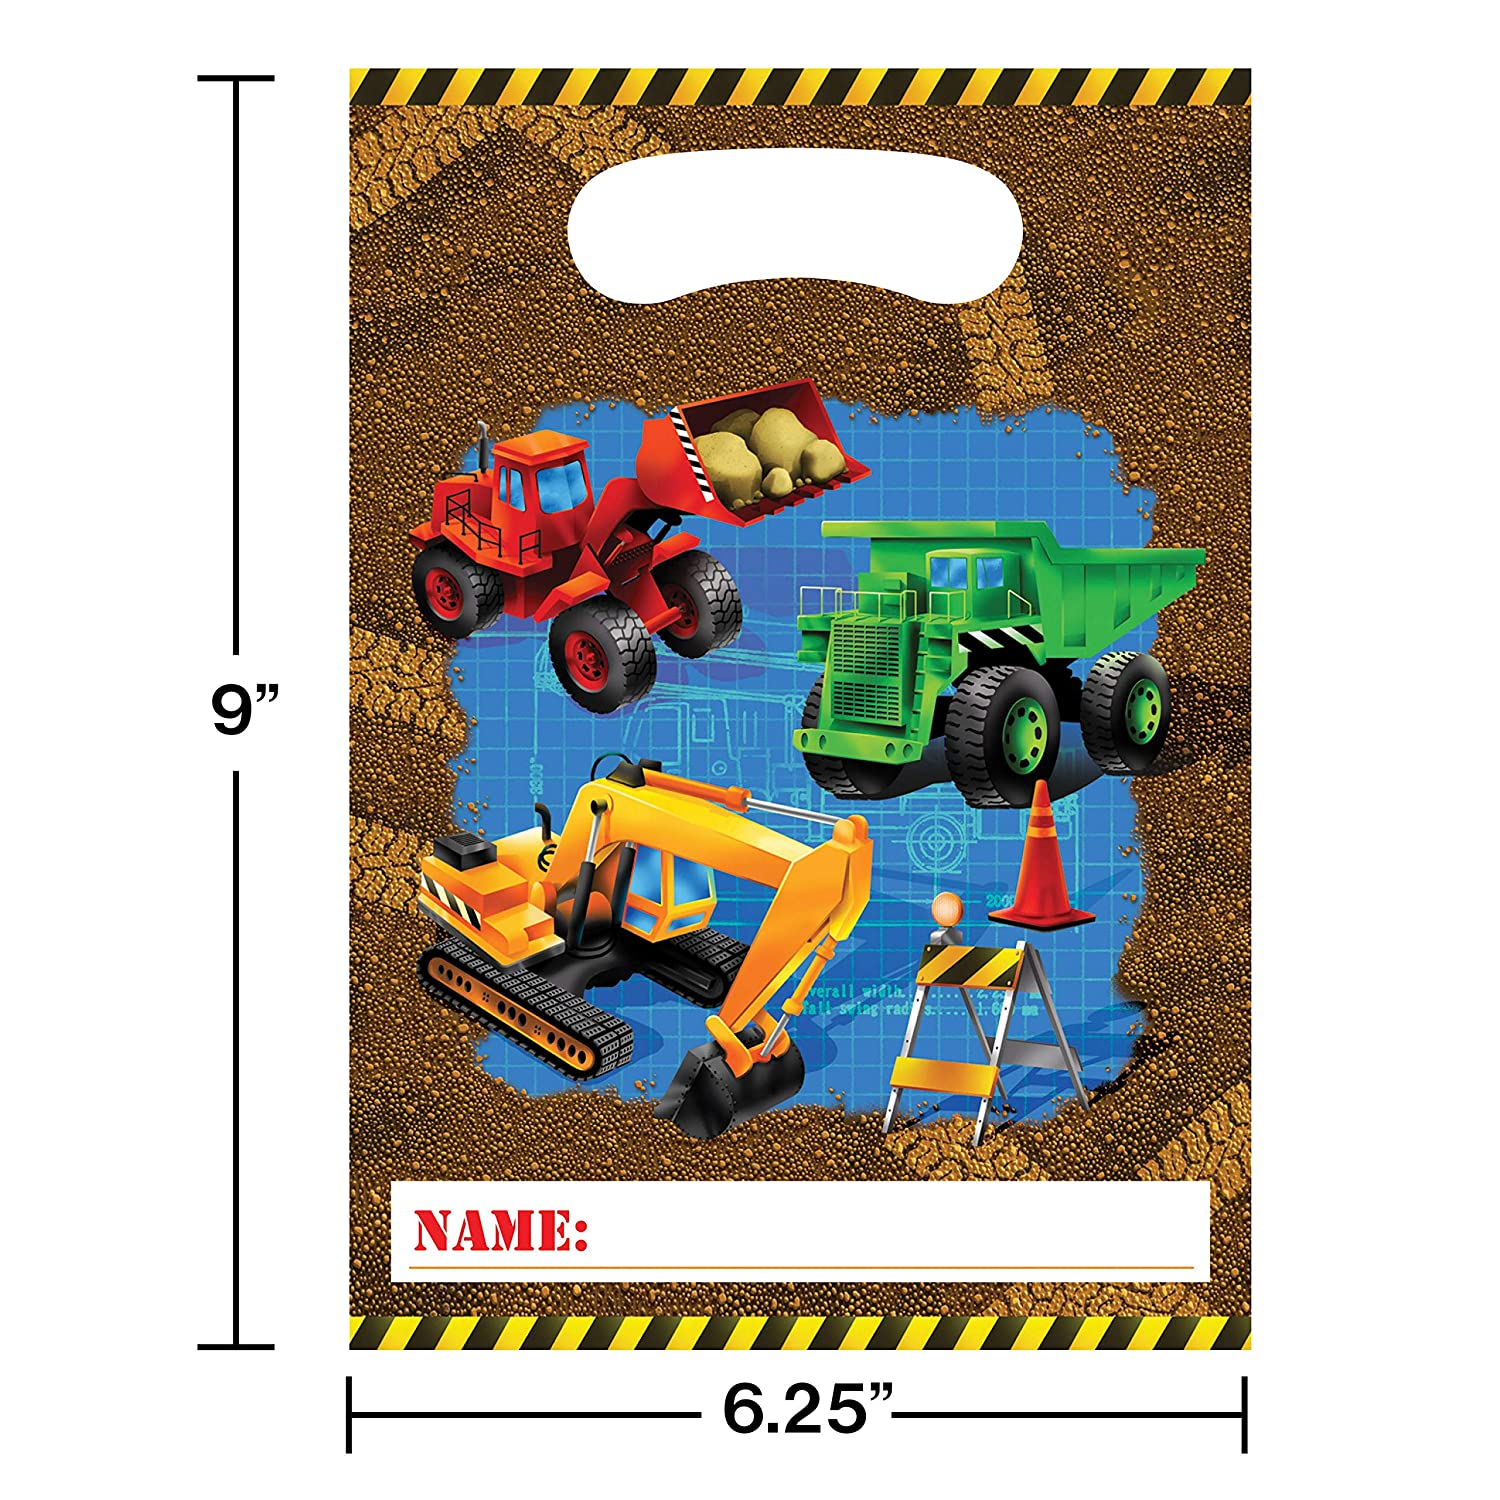 8-Count Party Loot Bags Under Construction Creative Converting-Toys 085955